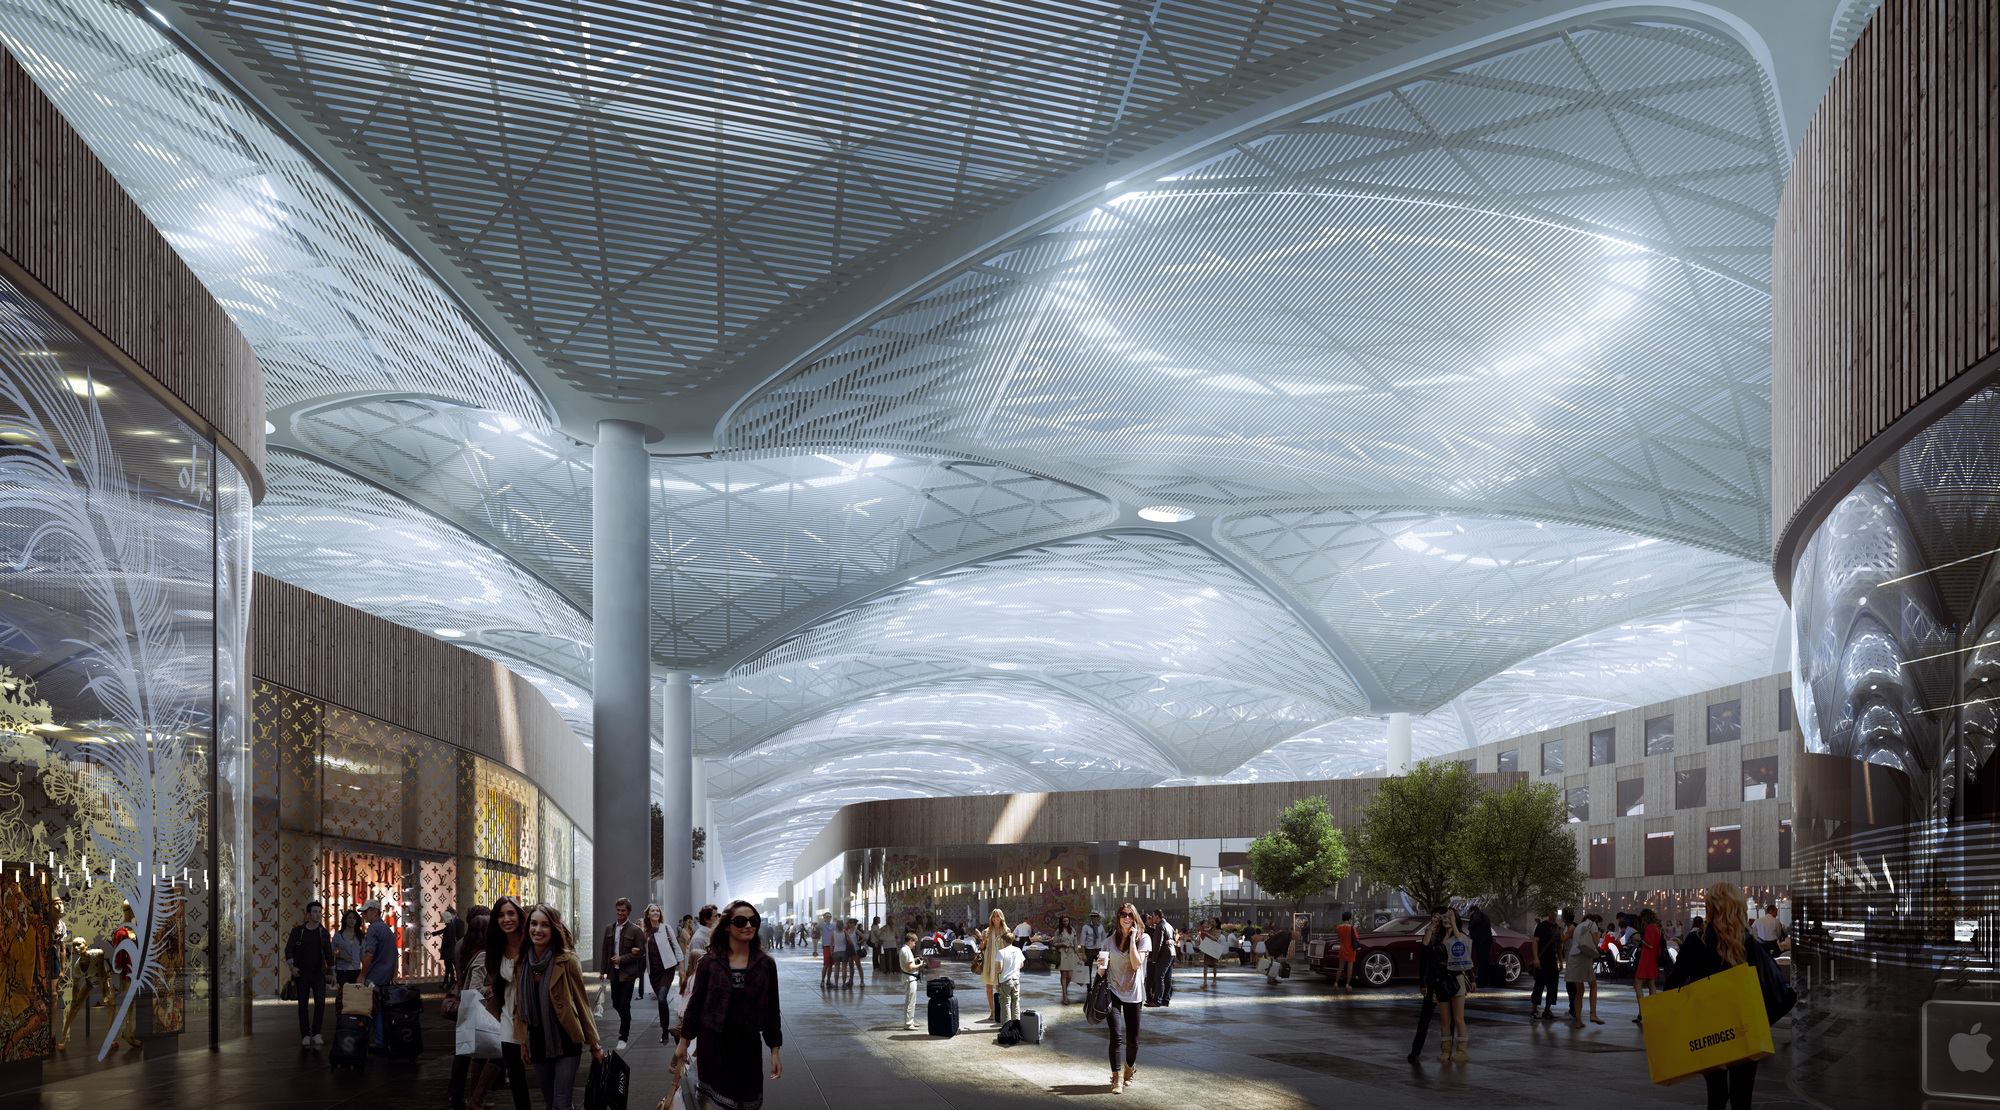 http://ad009cdnb.archdaily.net/wp-content/uploads/2014/11/546a702fe58ece7d2500002f_grimshaw-releases-new-images-of-world-s-largest-airport-terminal-in-istanbul_istanbul_new_airport_retail_area.jpg